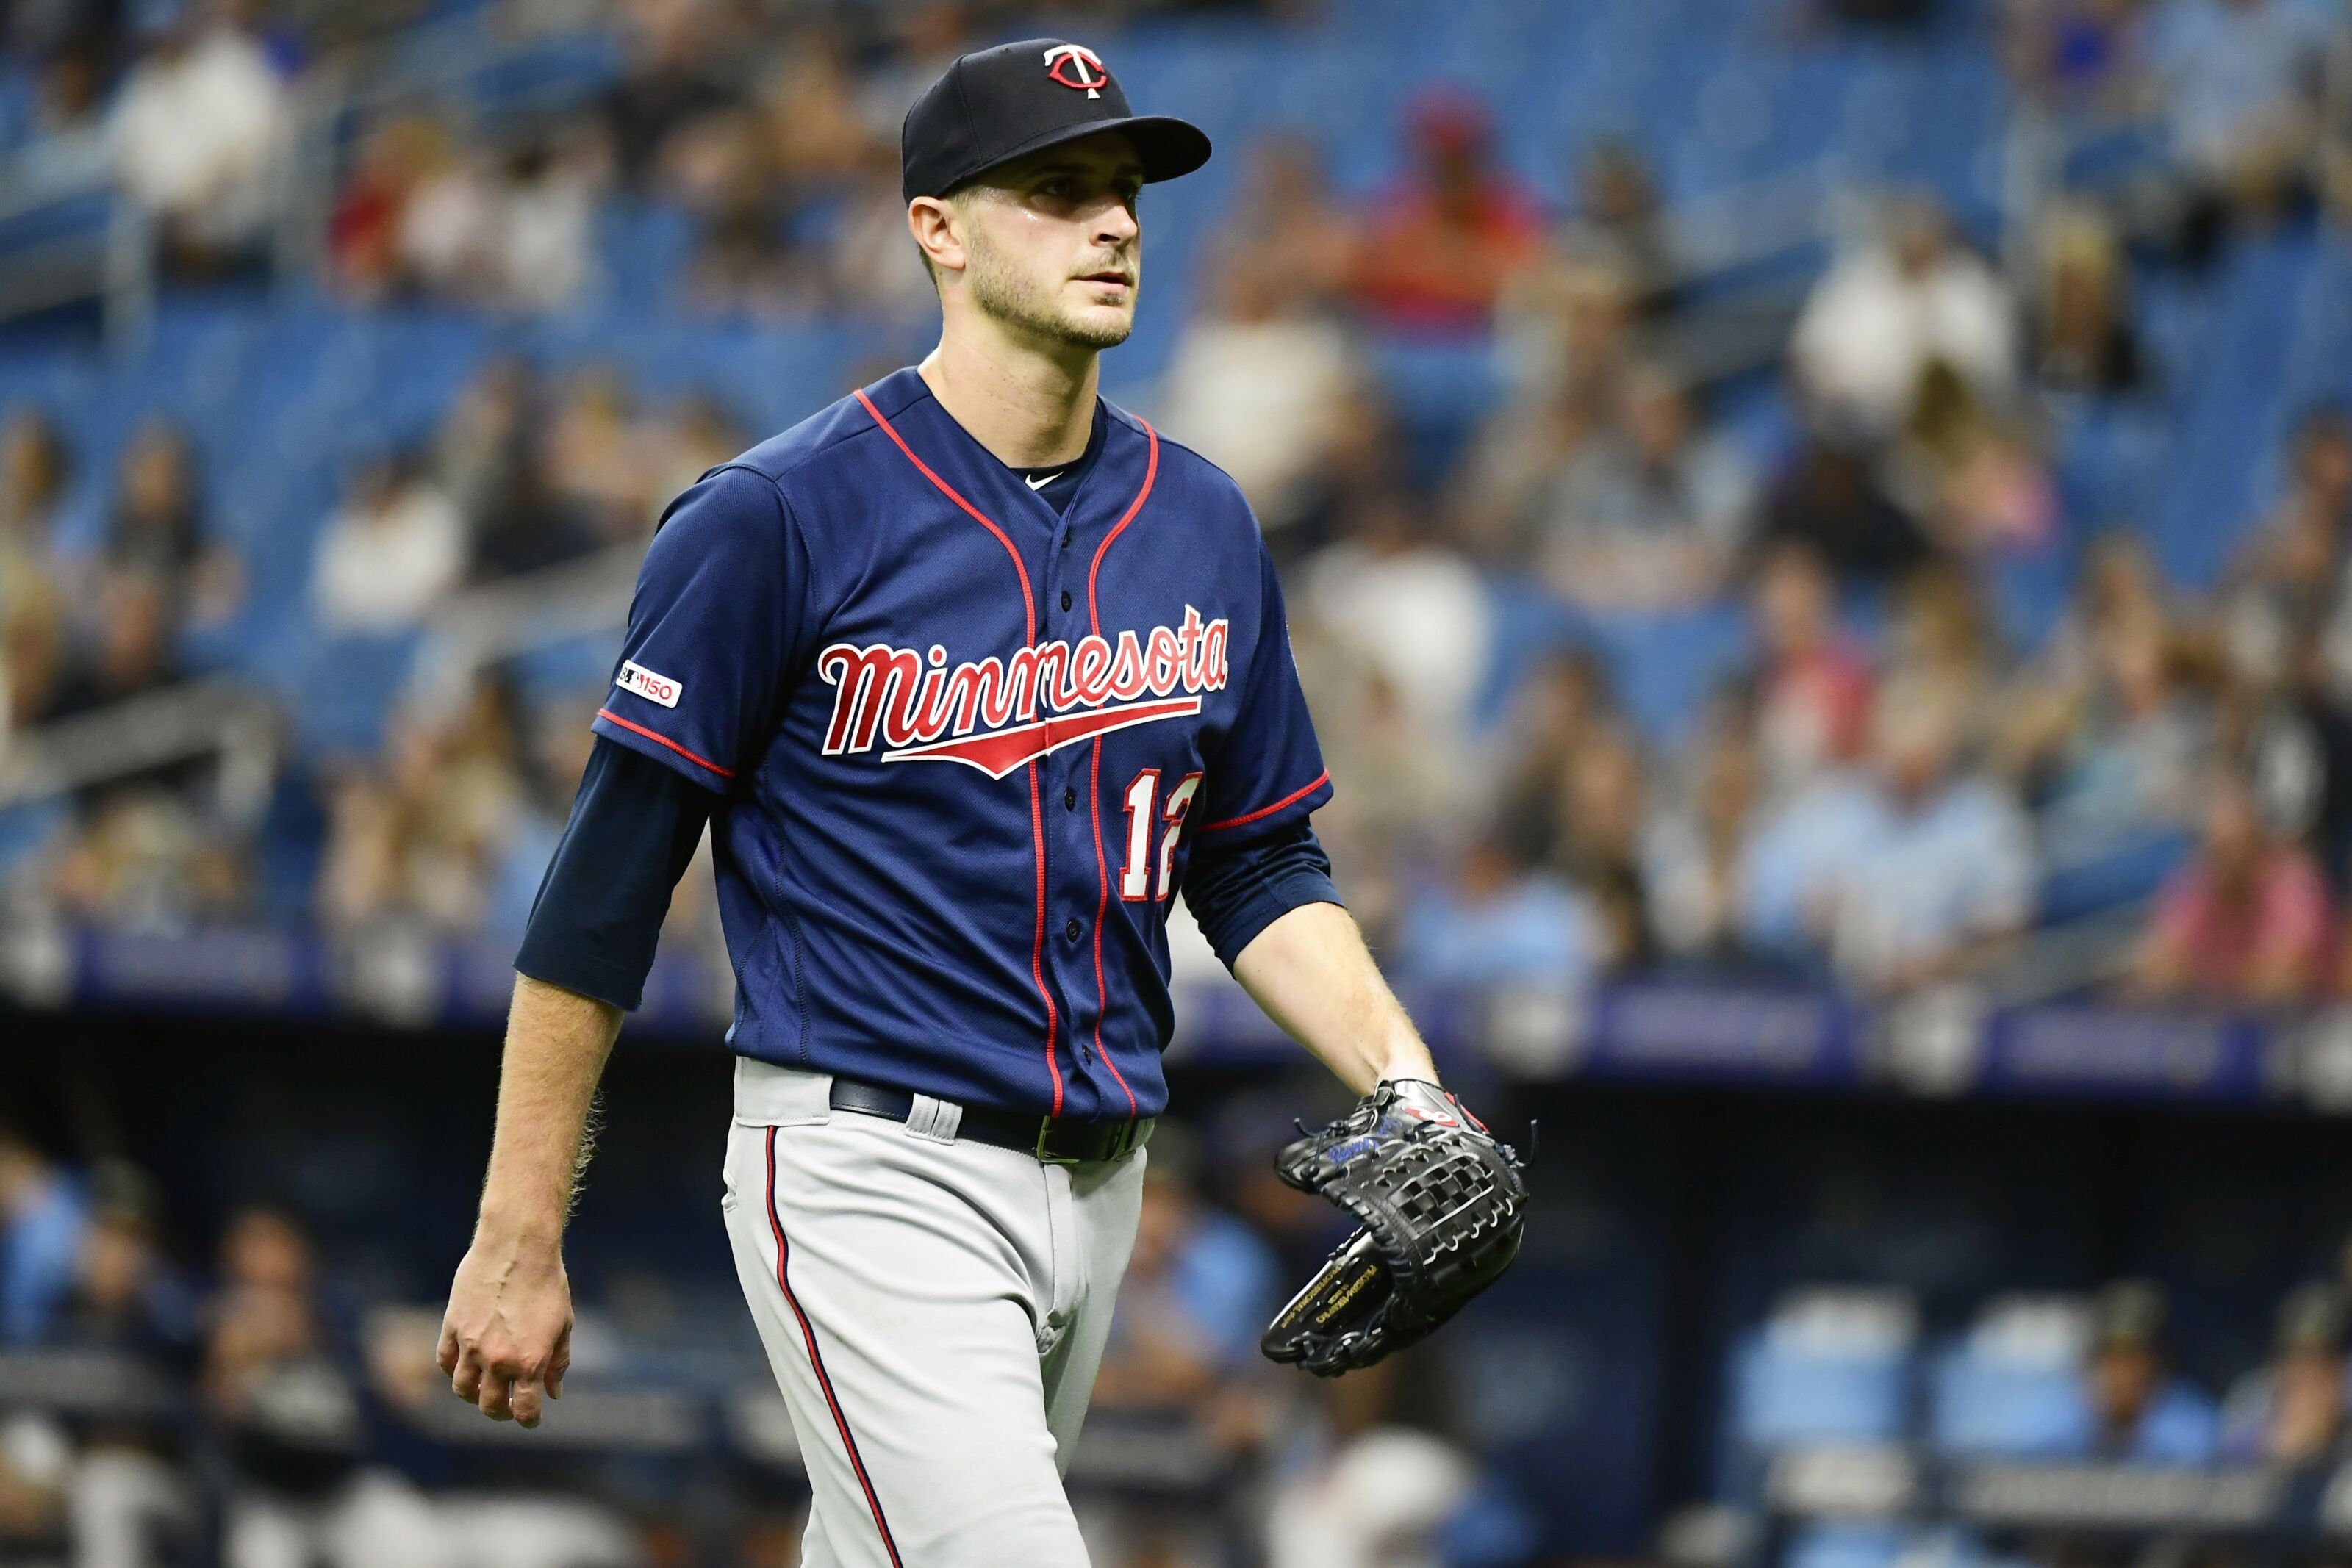 Minnesota Twins: Jake Odorizzi open to long-term deal with Twins